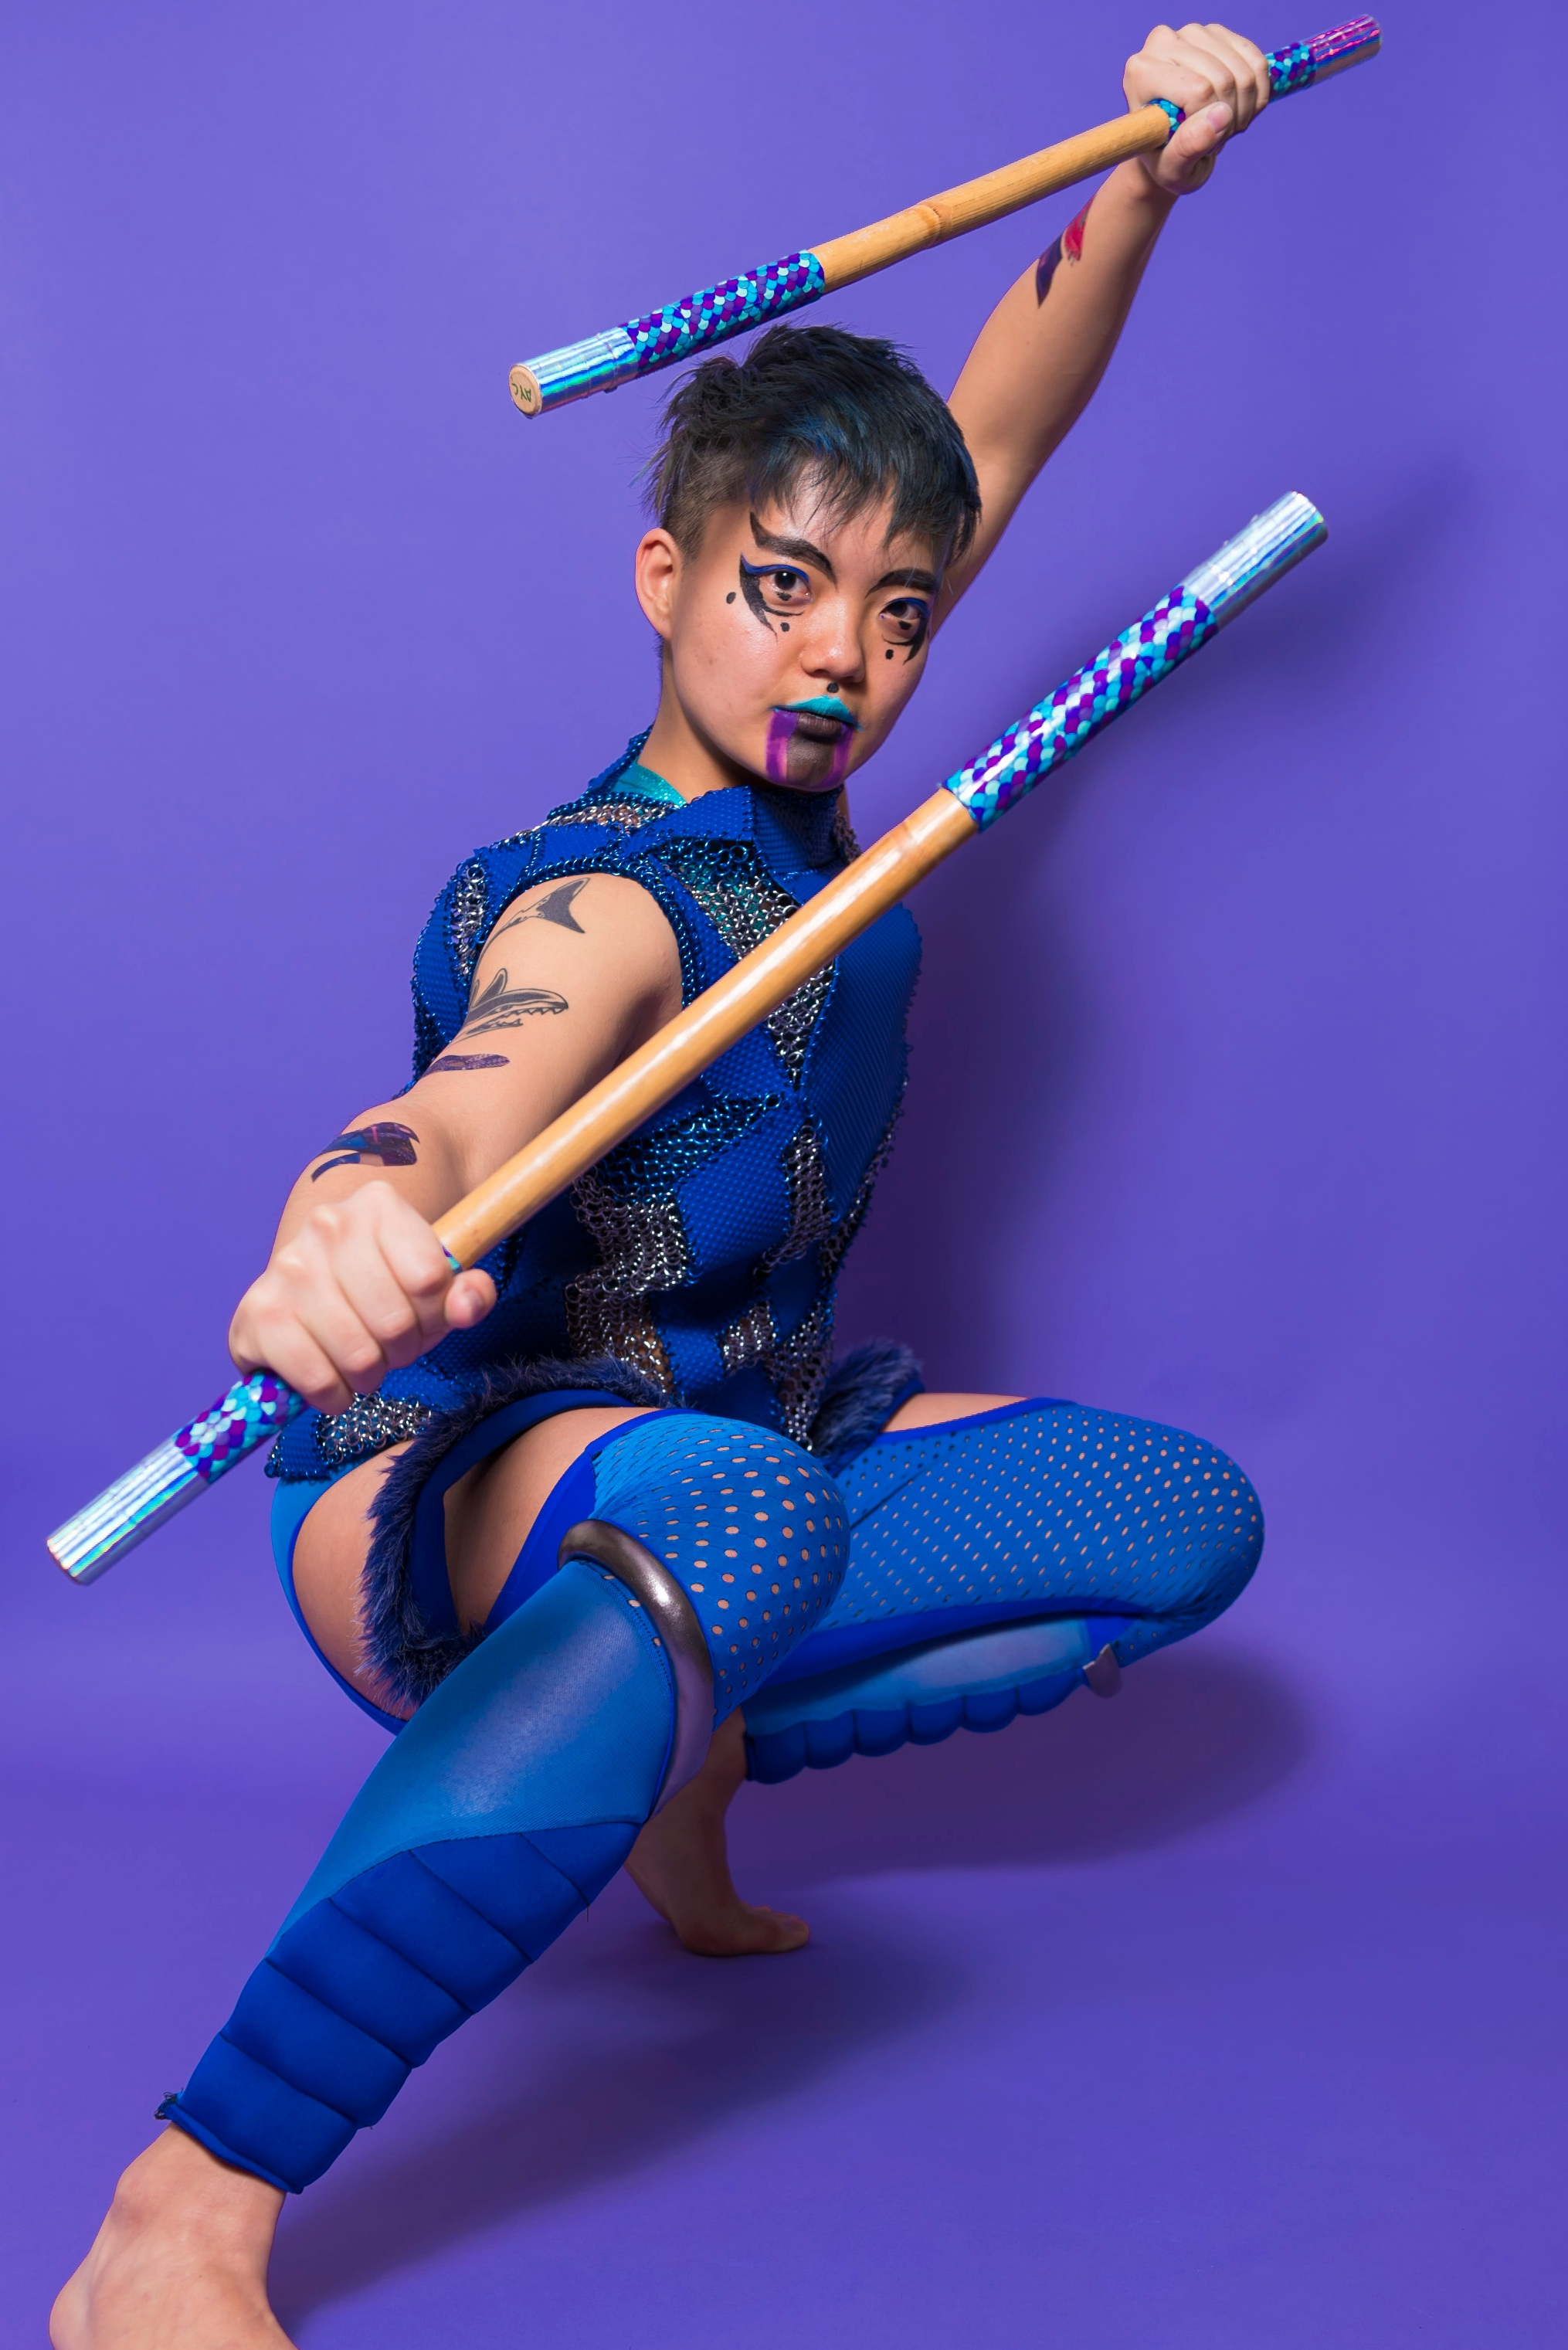 Image description: photo of me crouching in a fighting distance and holding my Eskrima sticks above my head defensively against a purple background. I'm wearing a blue vinyl and chainmaille vest inspired by traditional Filipino armor, and blue leggings with thigh cut-outs, silver trim, and furry dangly straps. I have curly and pointy makeup in purple, blue, and black on my face and arms. Outfit by Radical Visibility Collective. Makeup by Jerico Domingo. Photo by Colectivo Multipolar. Performance at Chicago History Museum, March 2018.